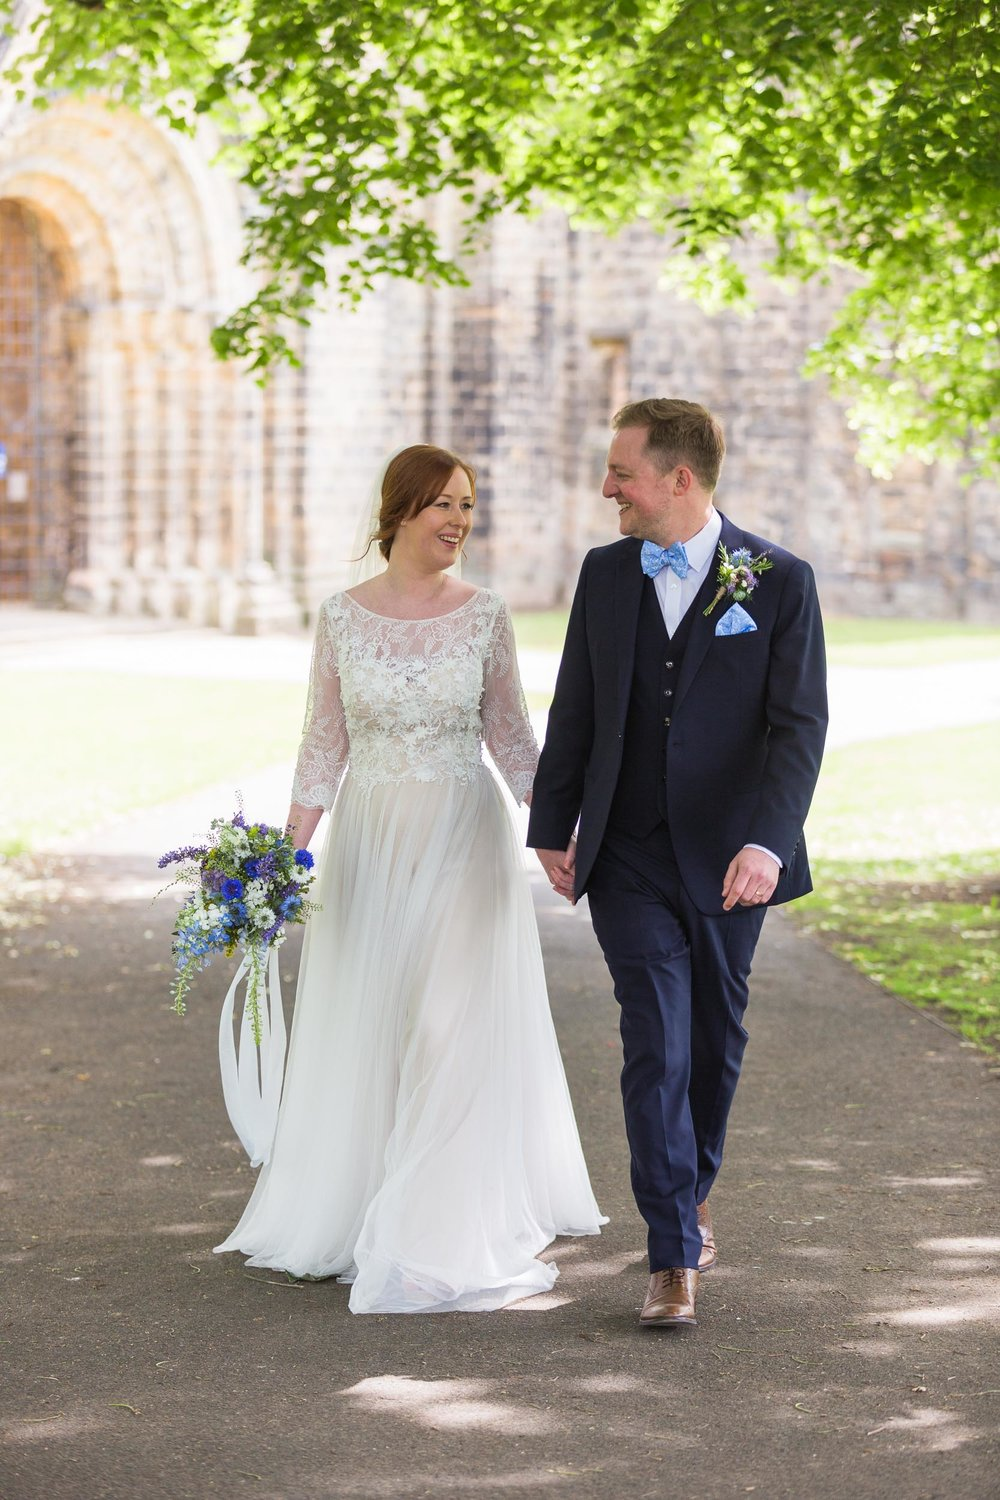 Amy & Oliver-Wedding Part II-Kirkstall Abbey-Leeds-photo-0342.jpg